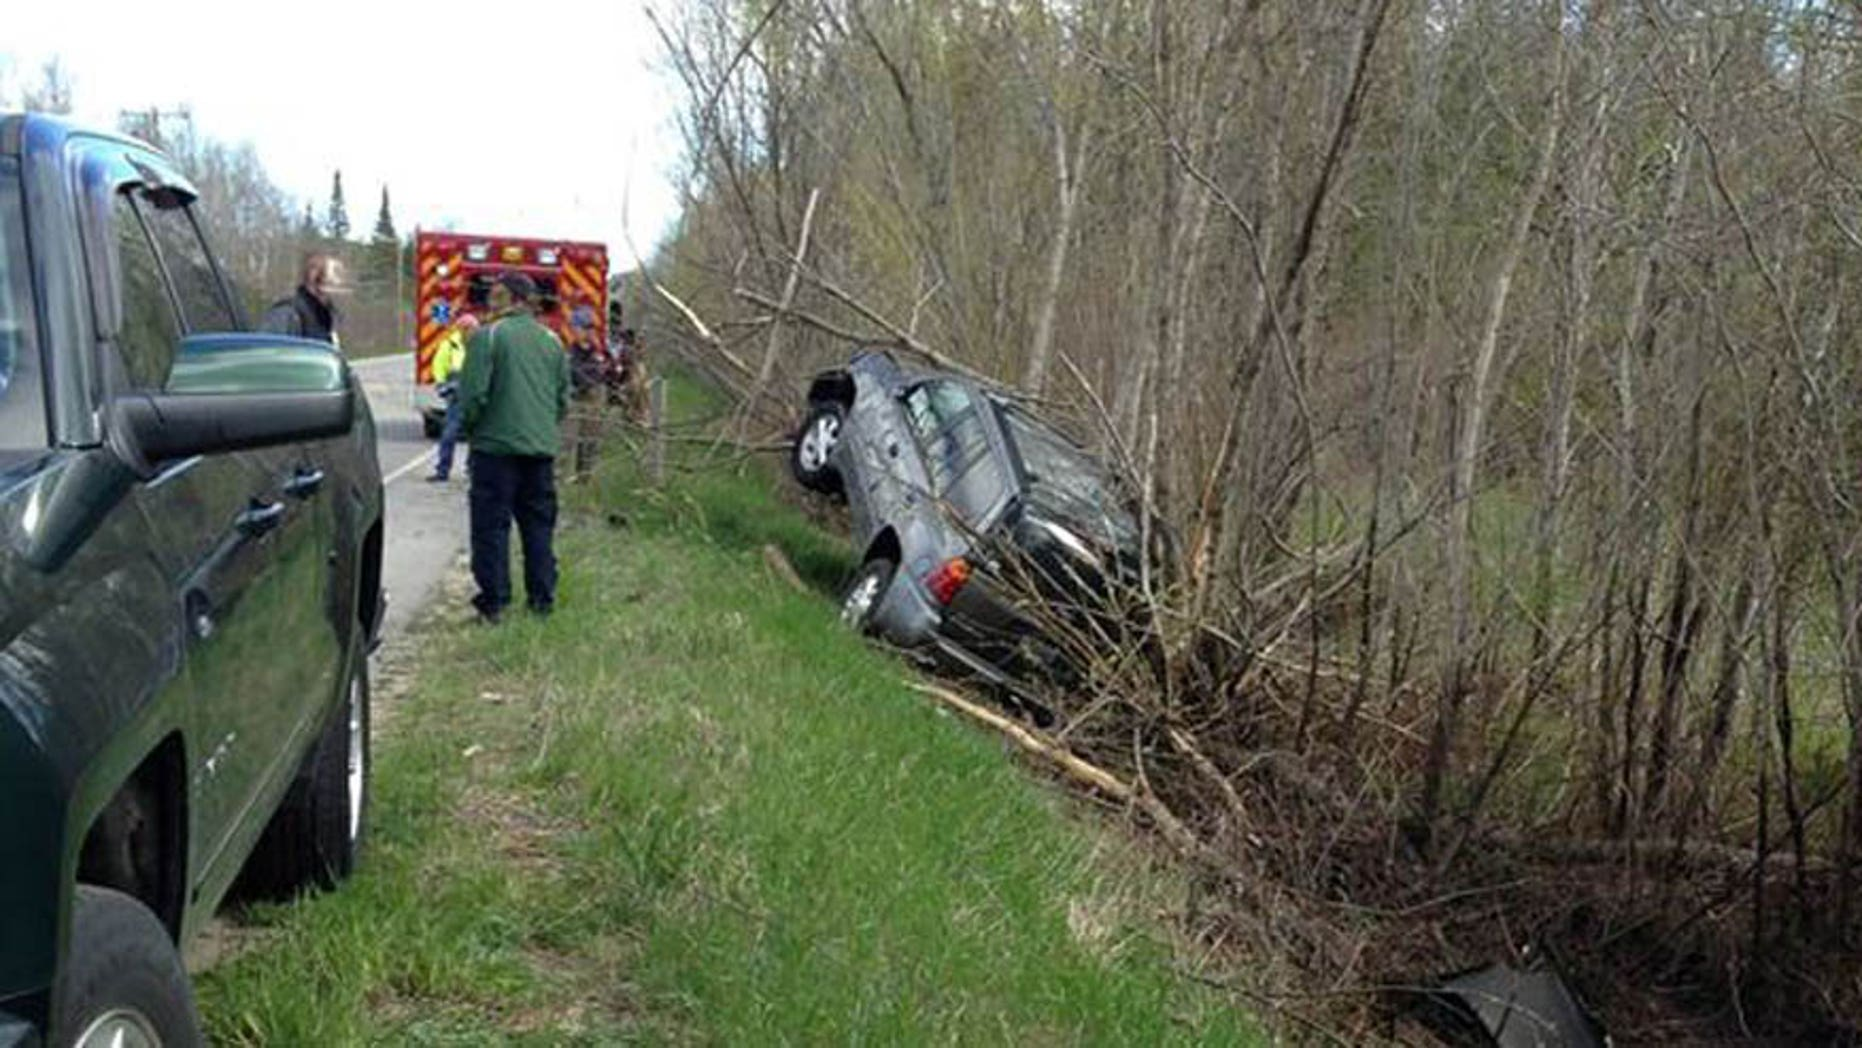 A driver claims he was distracted by a spider before he totaled his car in northern Michigan